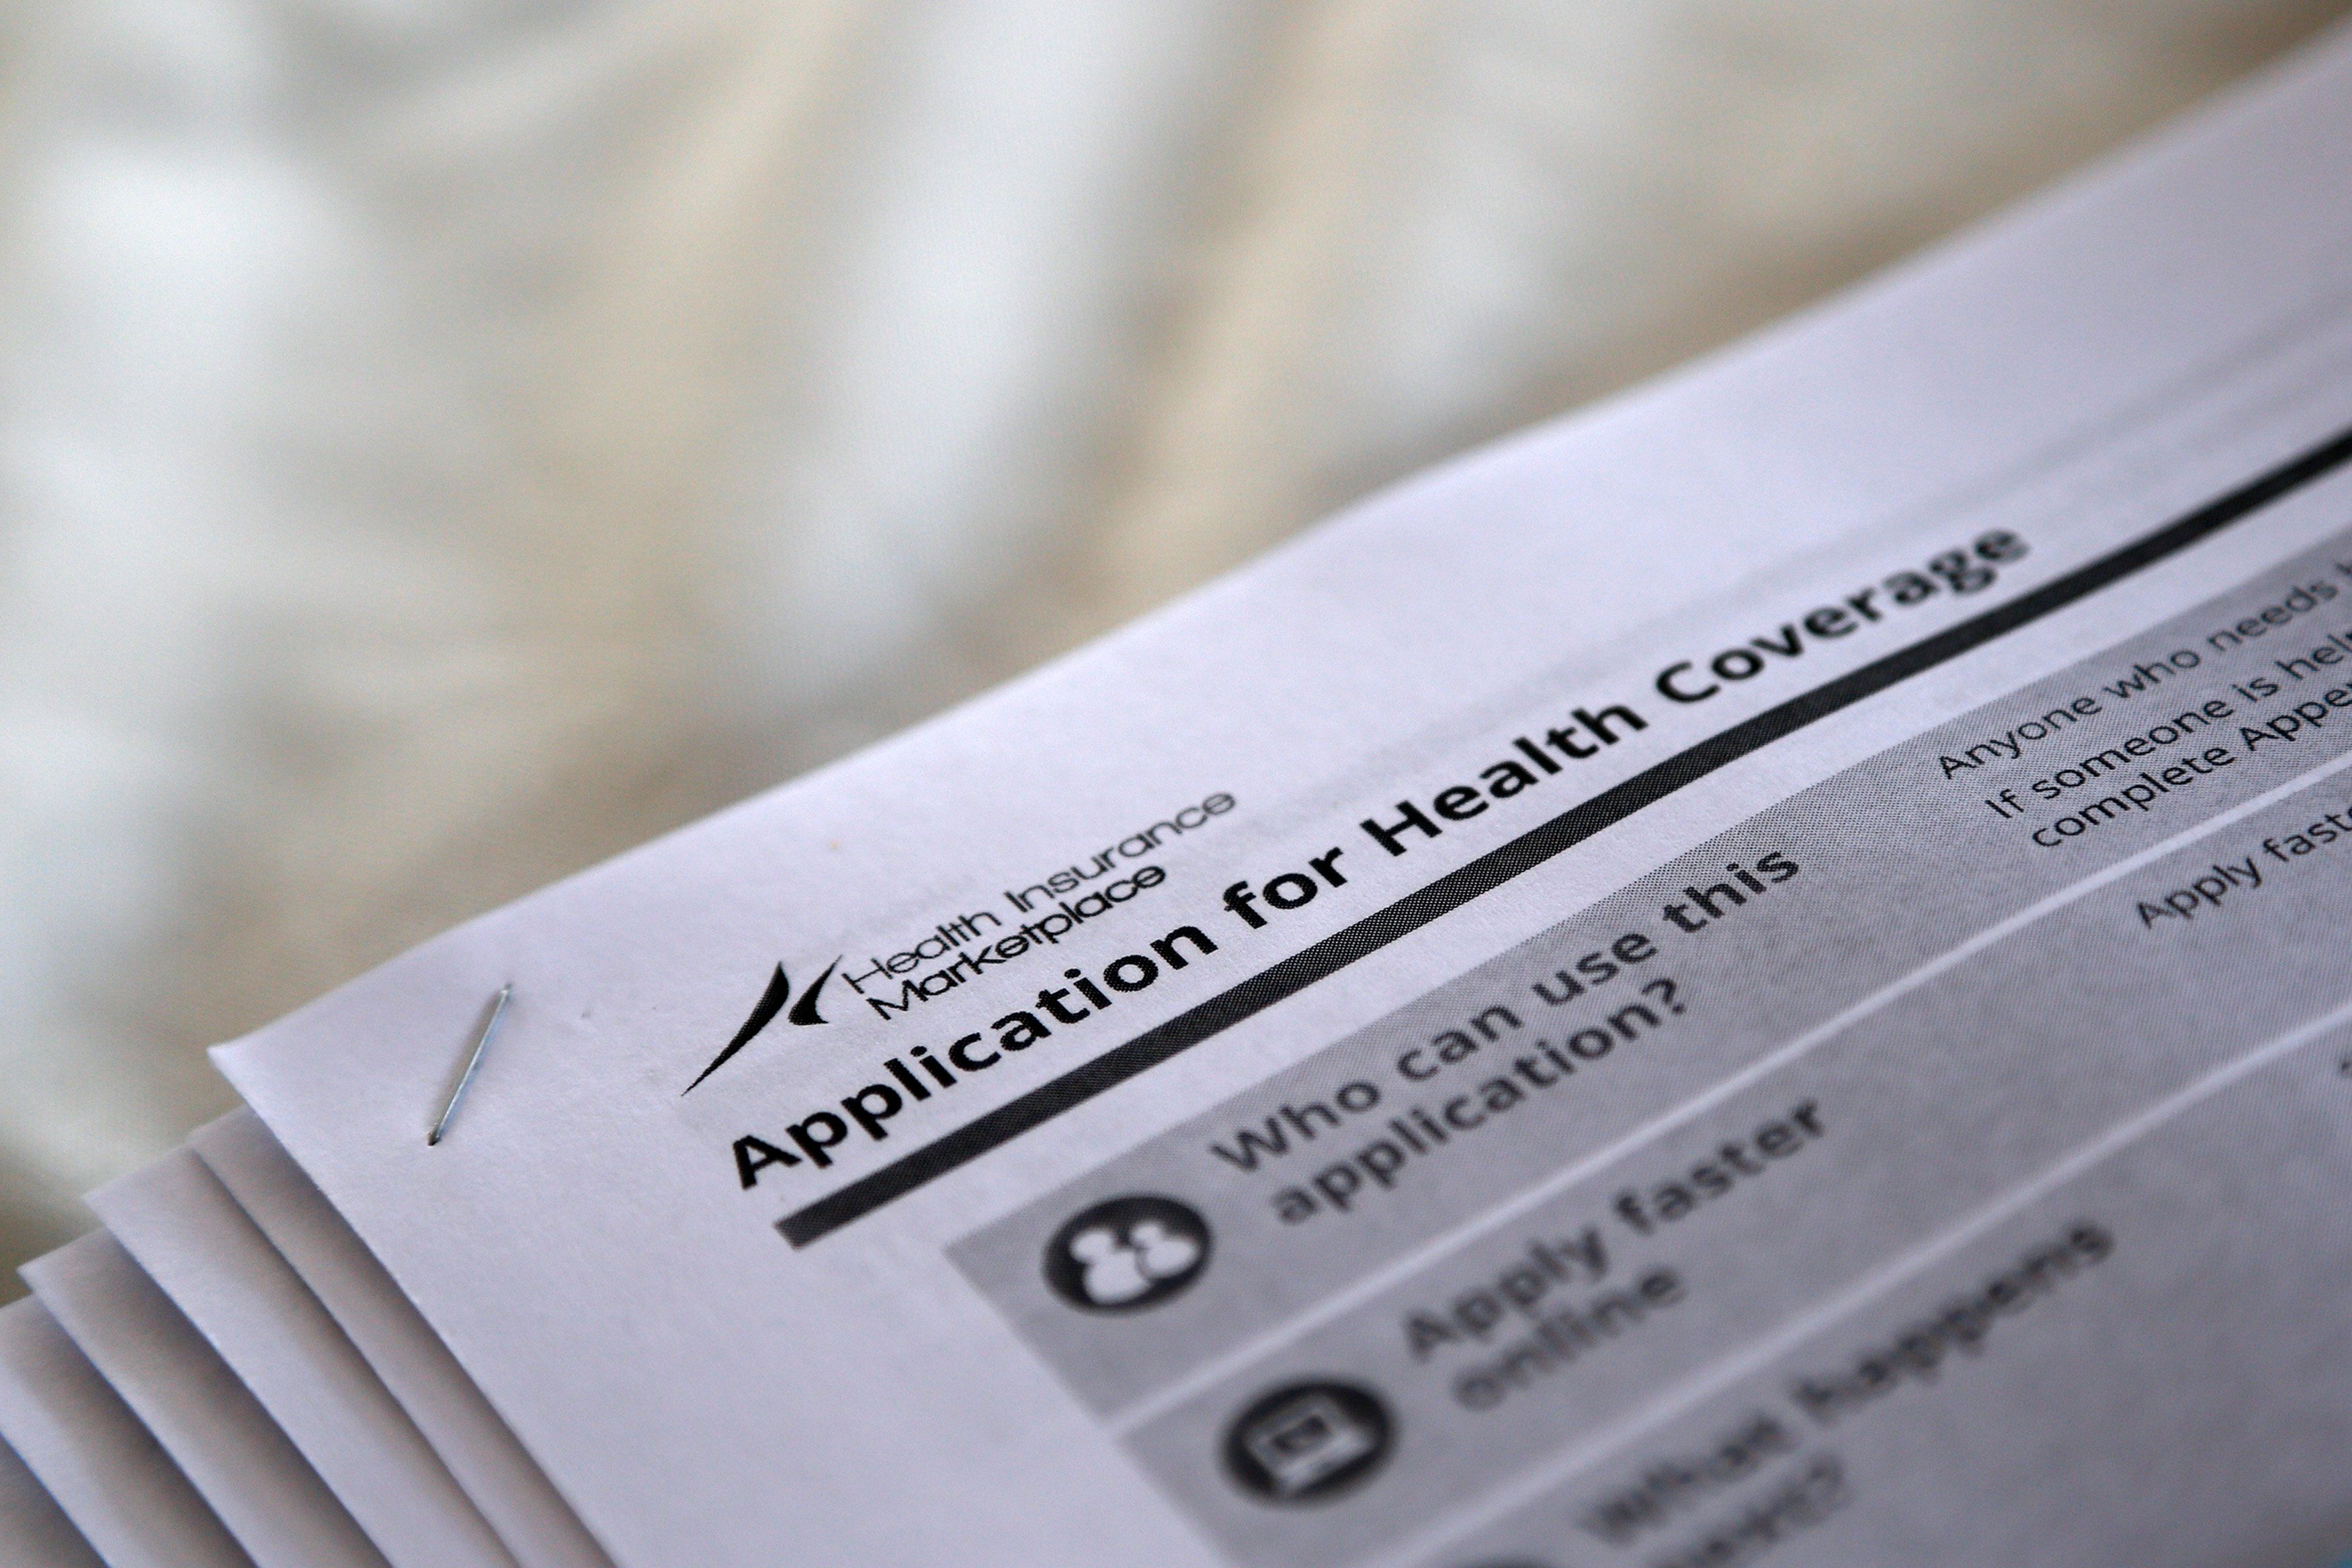 The federal government forms for applying for health coverage are seen at a rally held by supporters of the Affordable Care A